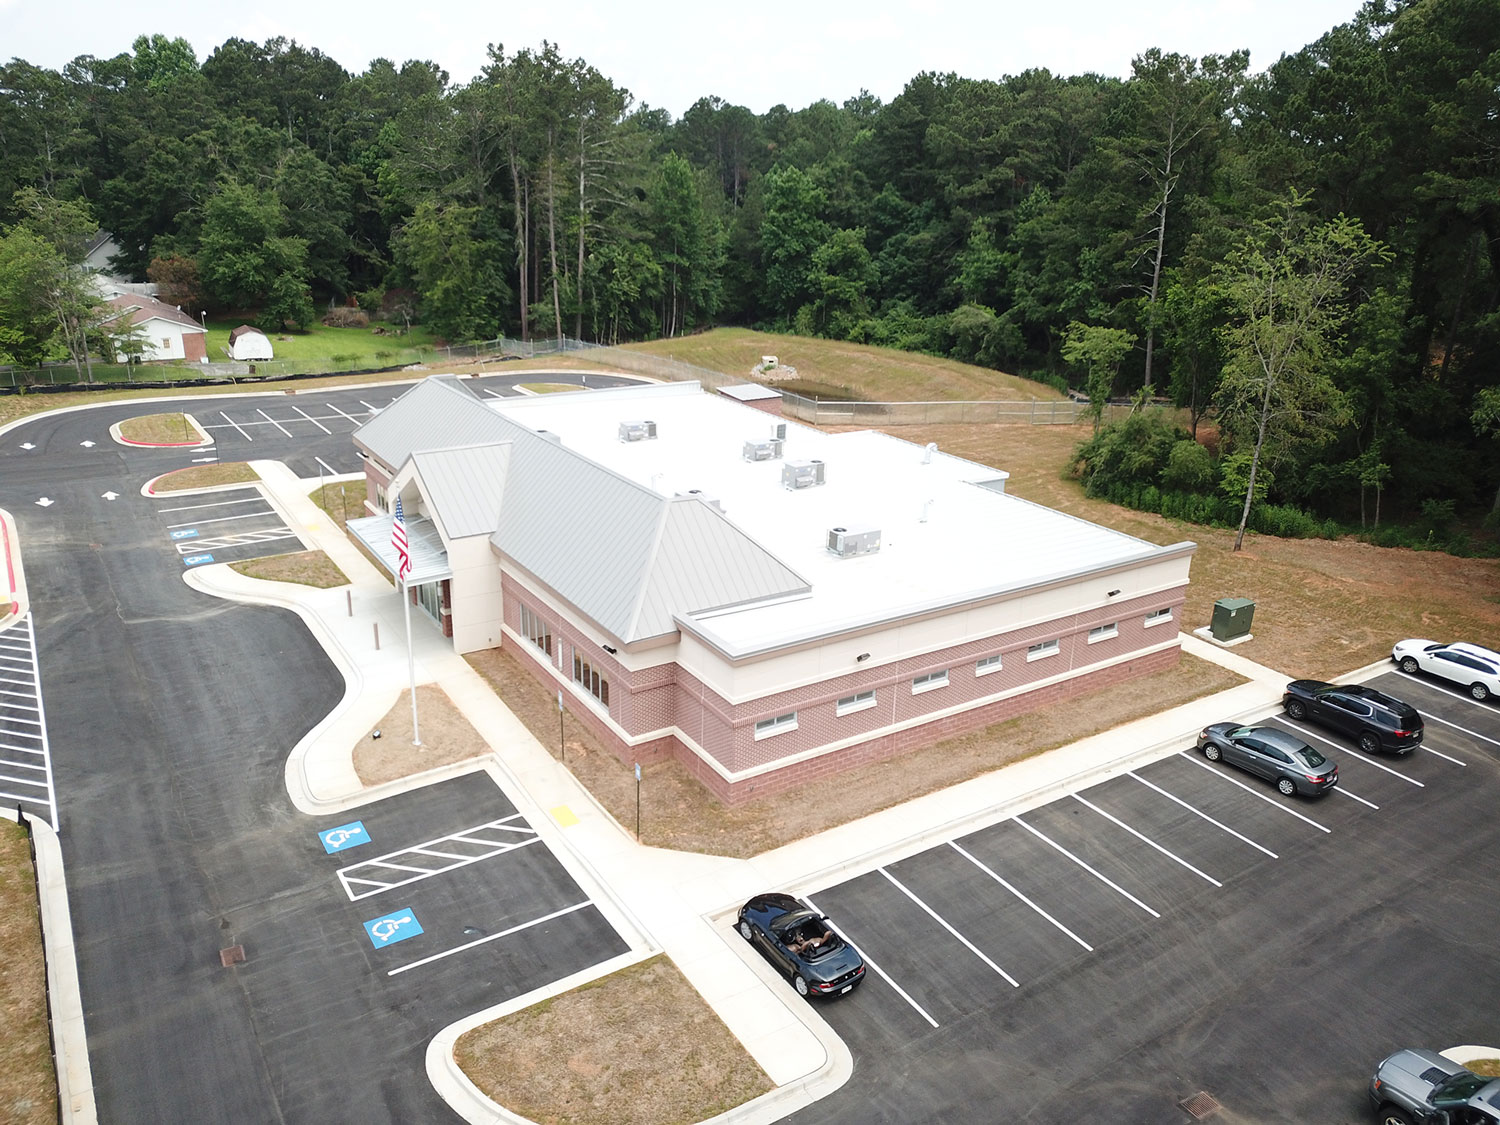 NCES_ACWORTH-KENNESAW PUBLIC HEALTH CENTER